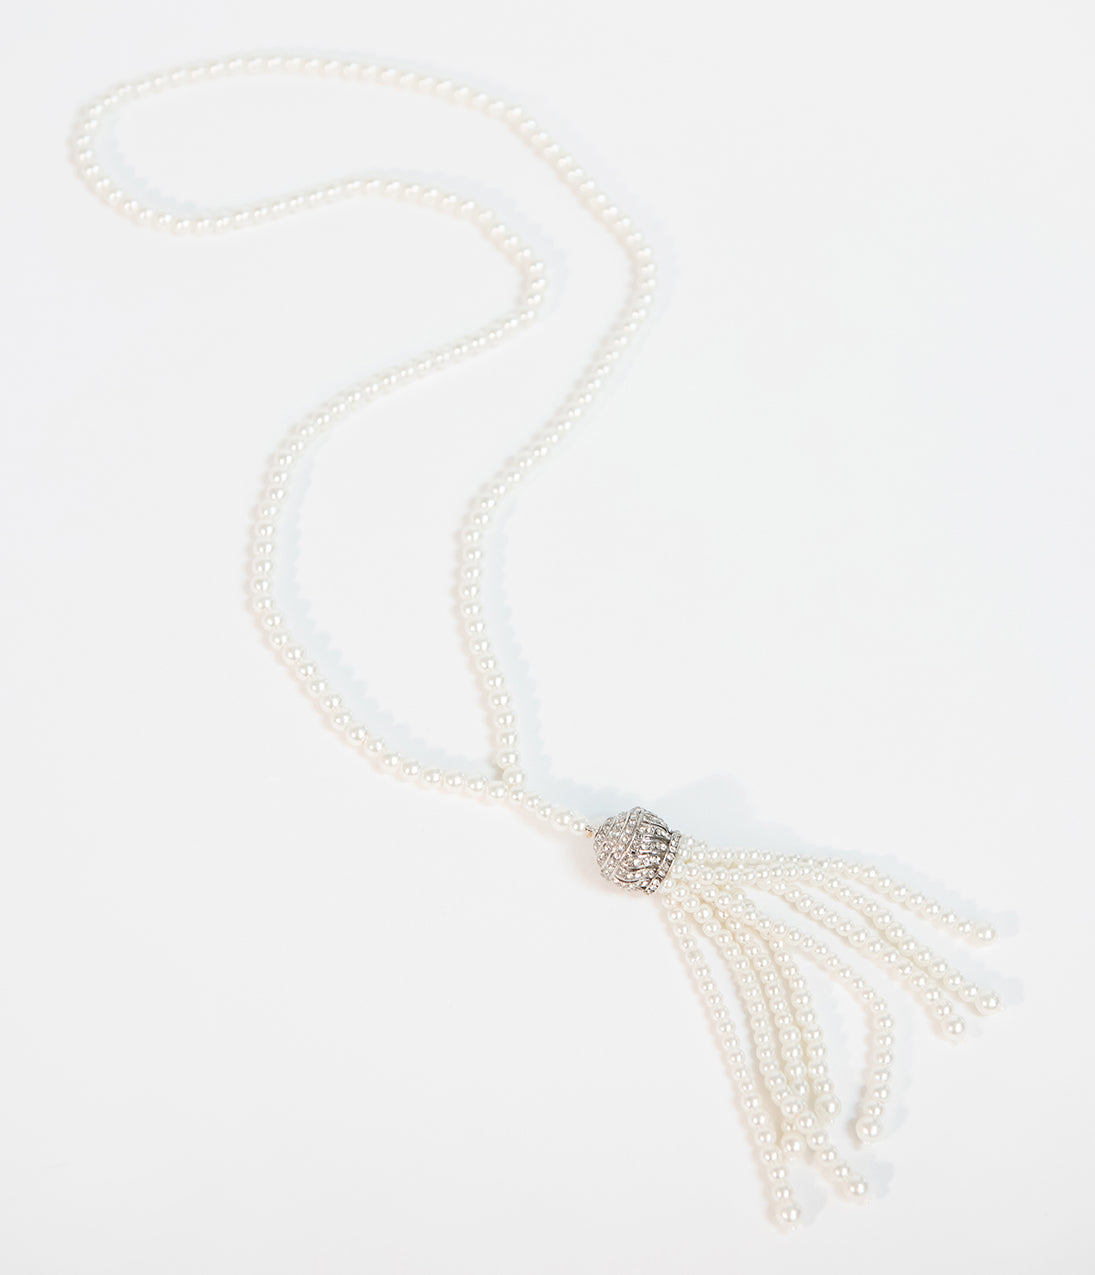 60s -70s Jewelry – Necklaces, Earrings, Rings, Bracelets Unique Vintage Deco Style Ivory Pearl  Silver Tassel Necklace $24.00 AT vintagedancer.com